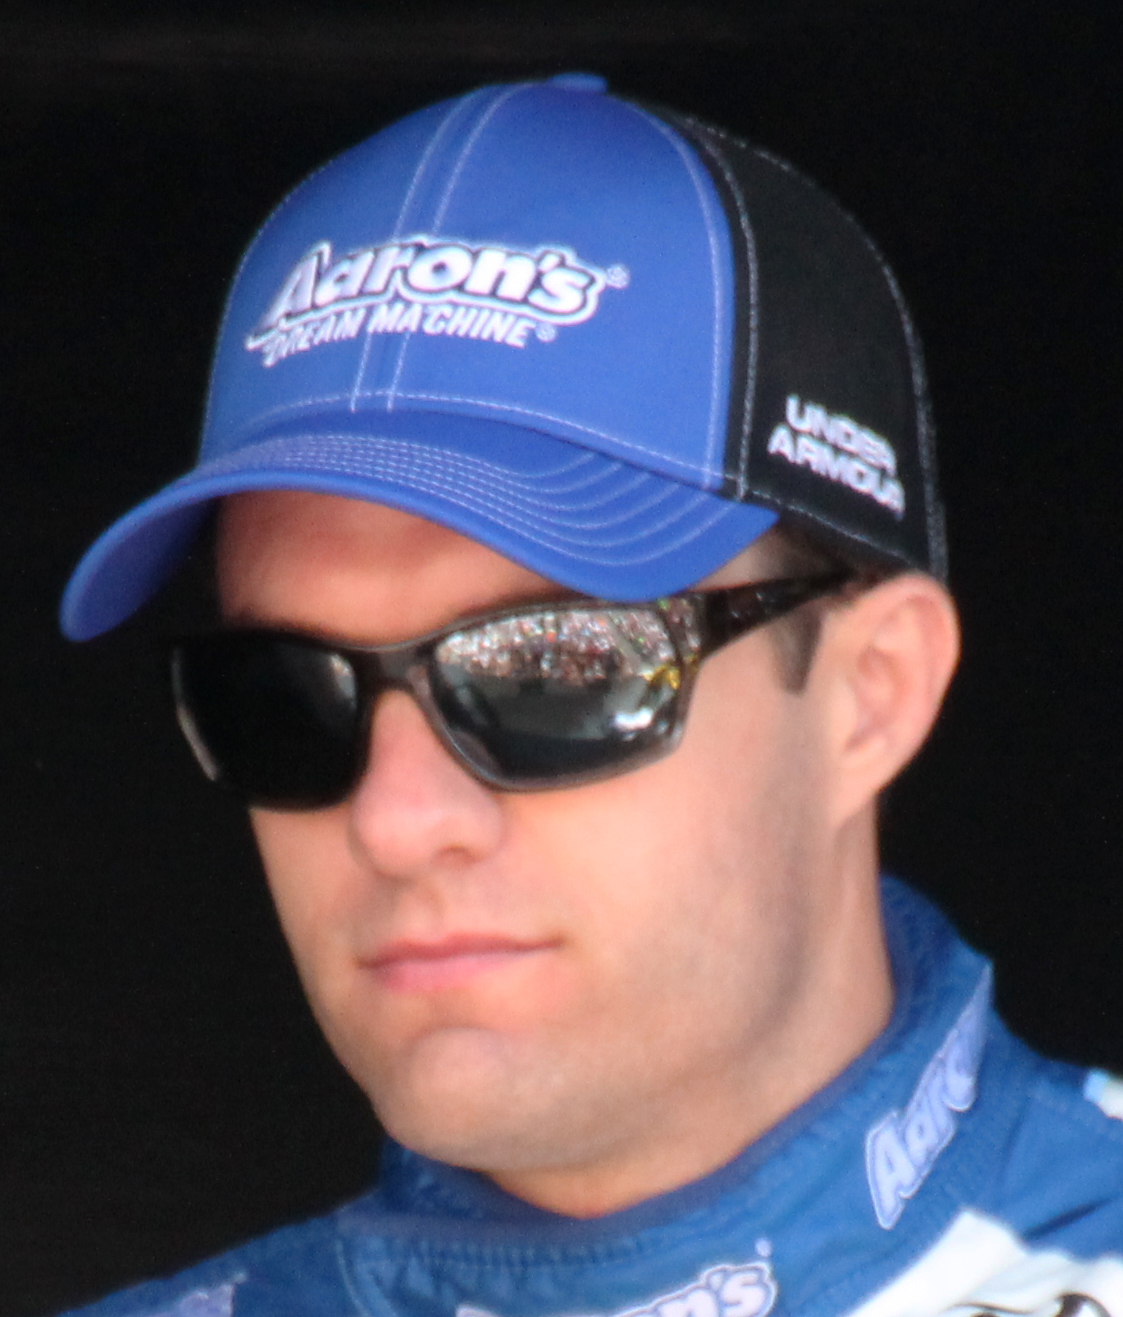 First Team Toyota >> David Ragan - Wikipedia